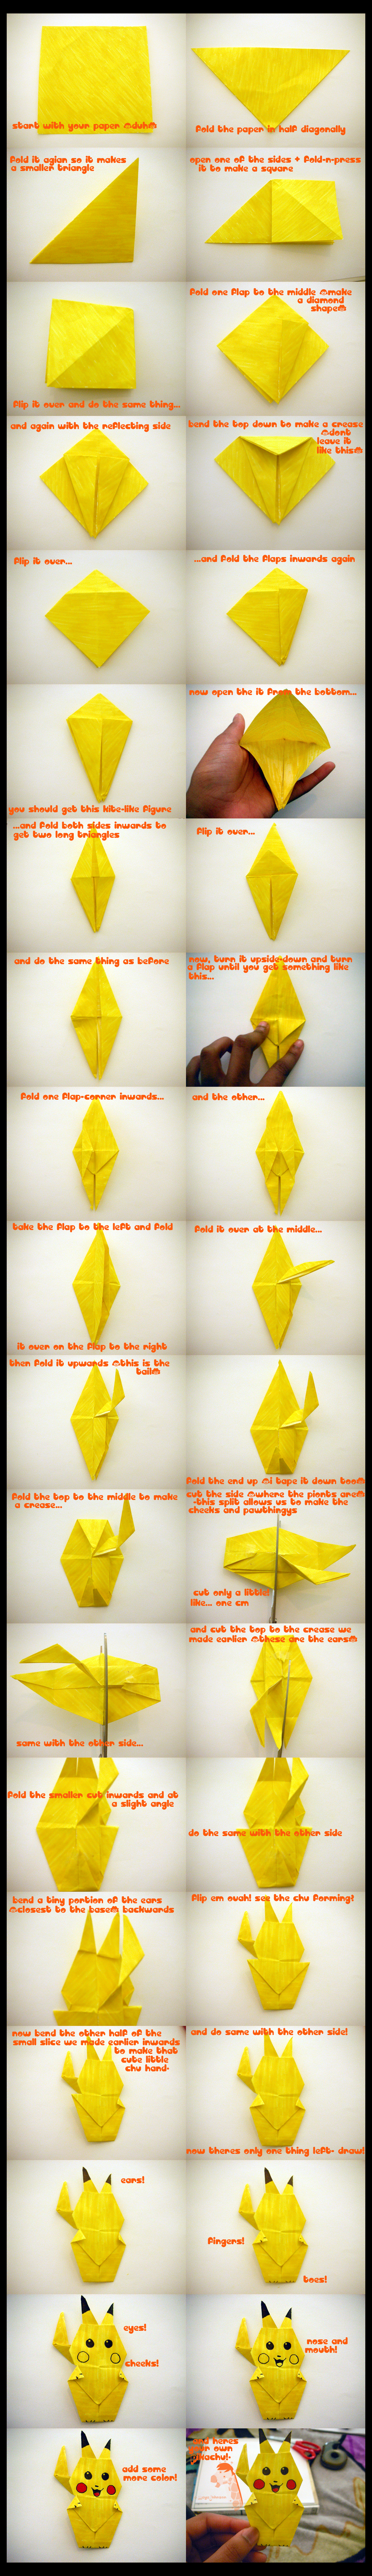 How to Make an Origami Pikachu (with Pictures) - wikiHow | 8623x1244